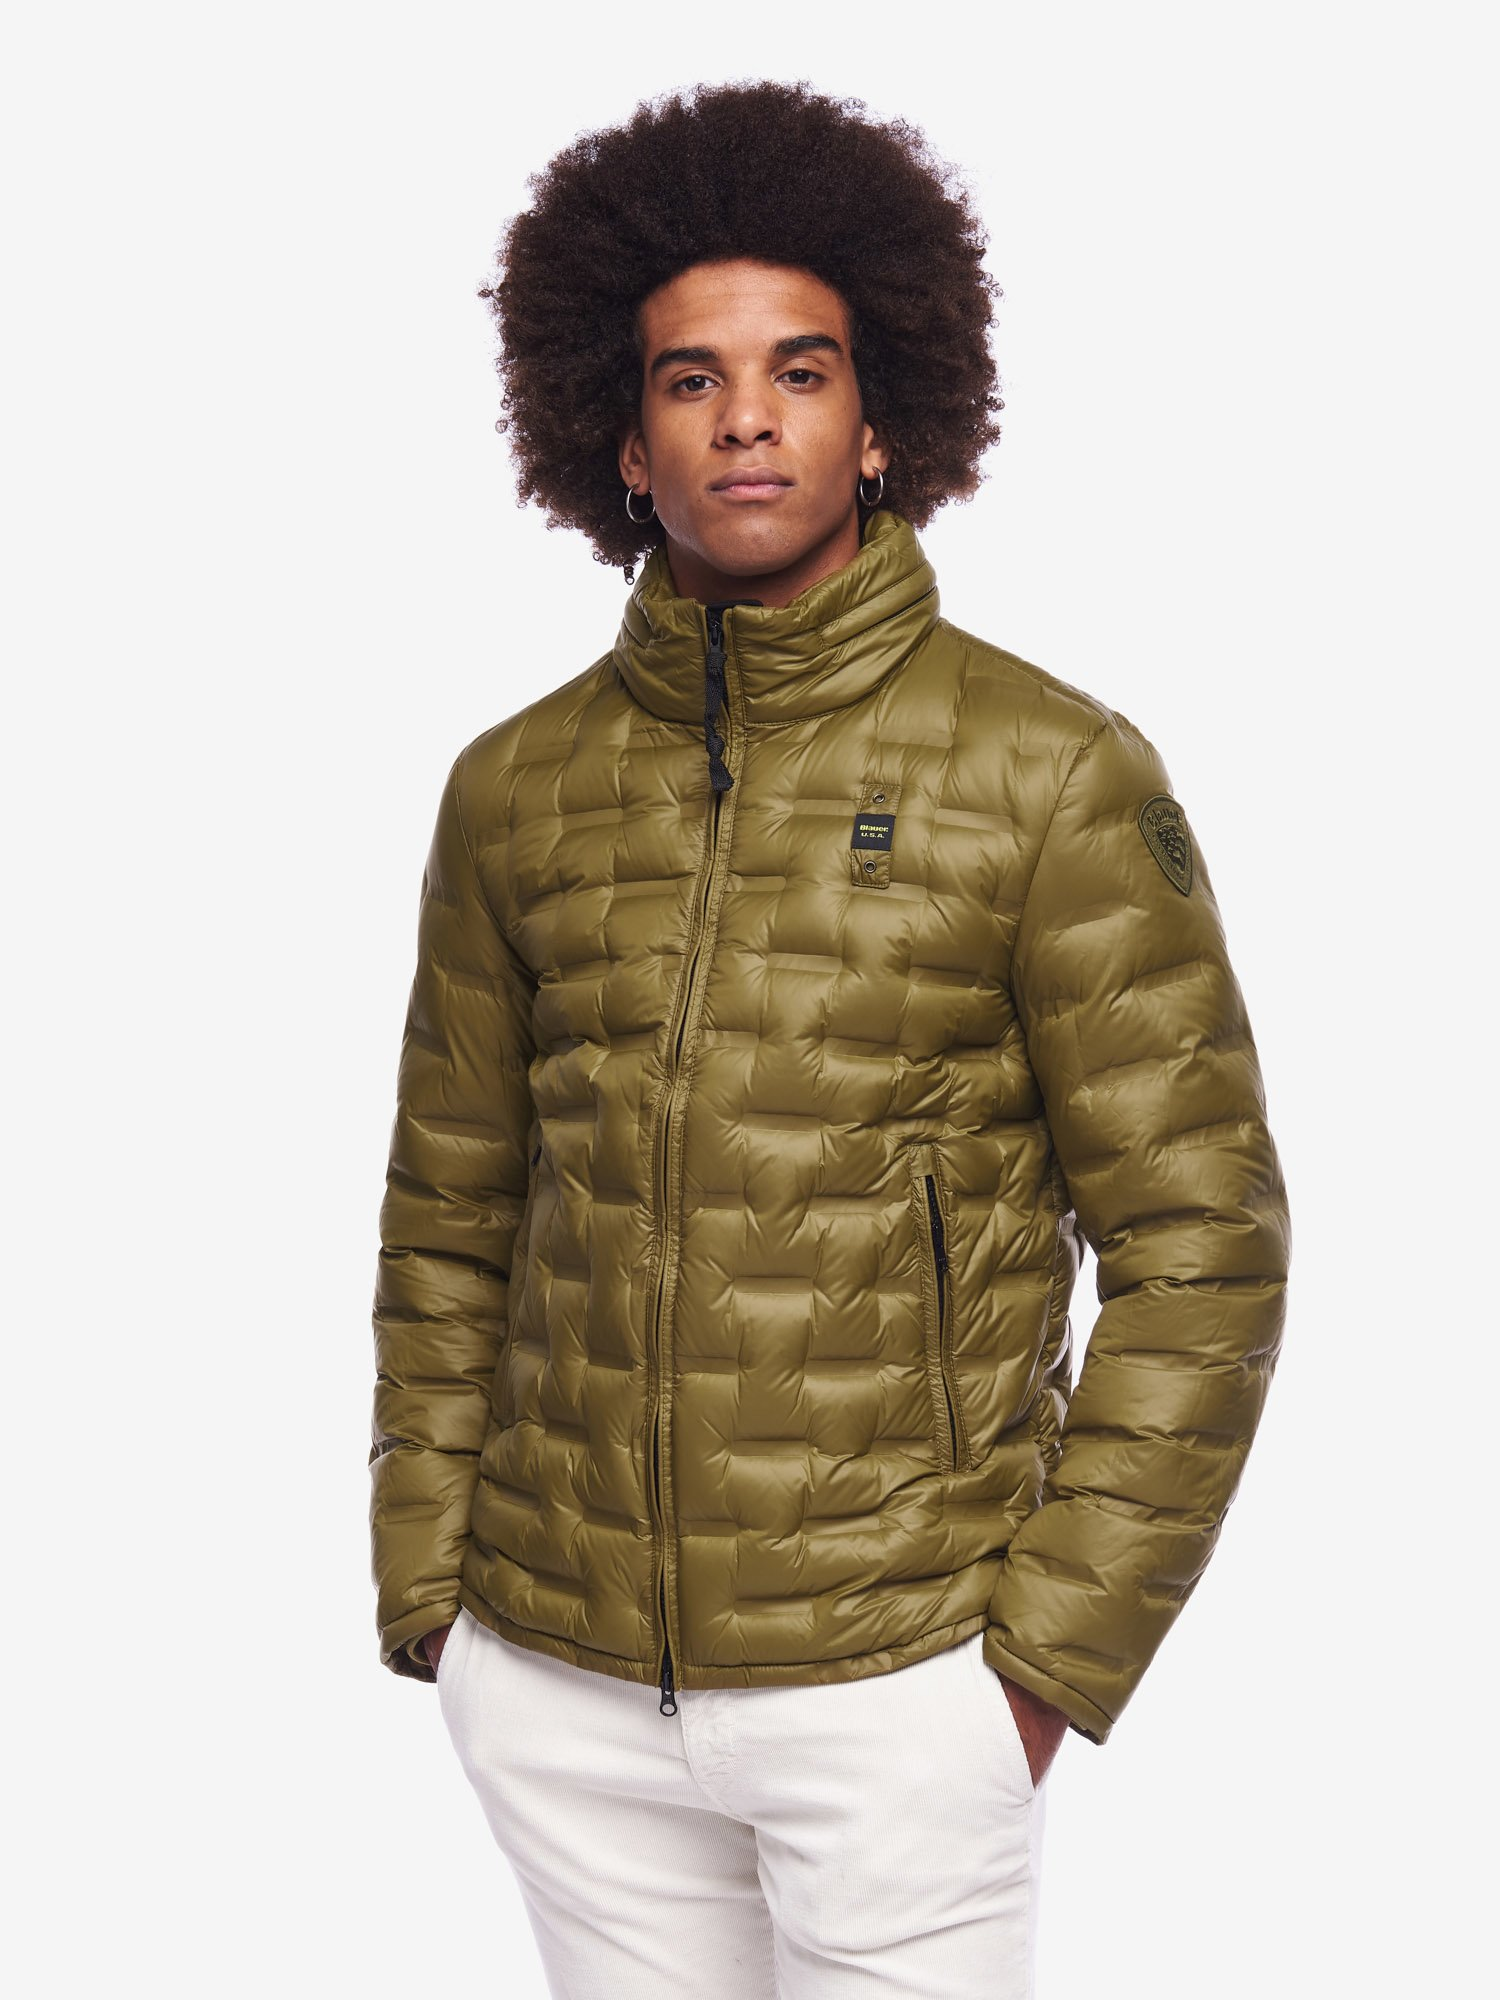 Blauer - LANE THERMAL QUILTED DOWN JACKET - Green Snake - Blauer